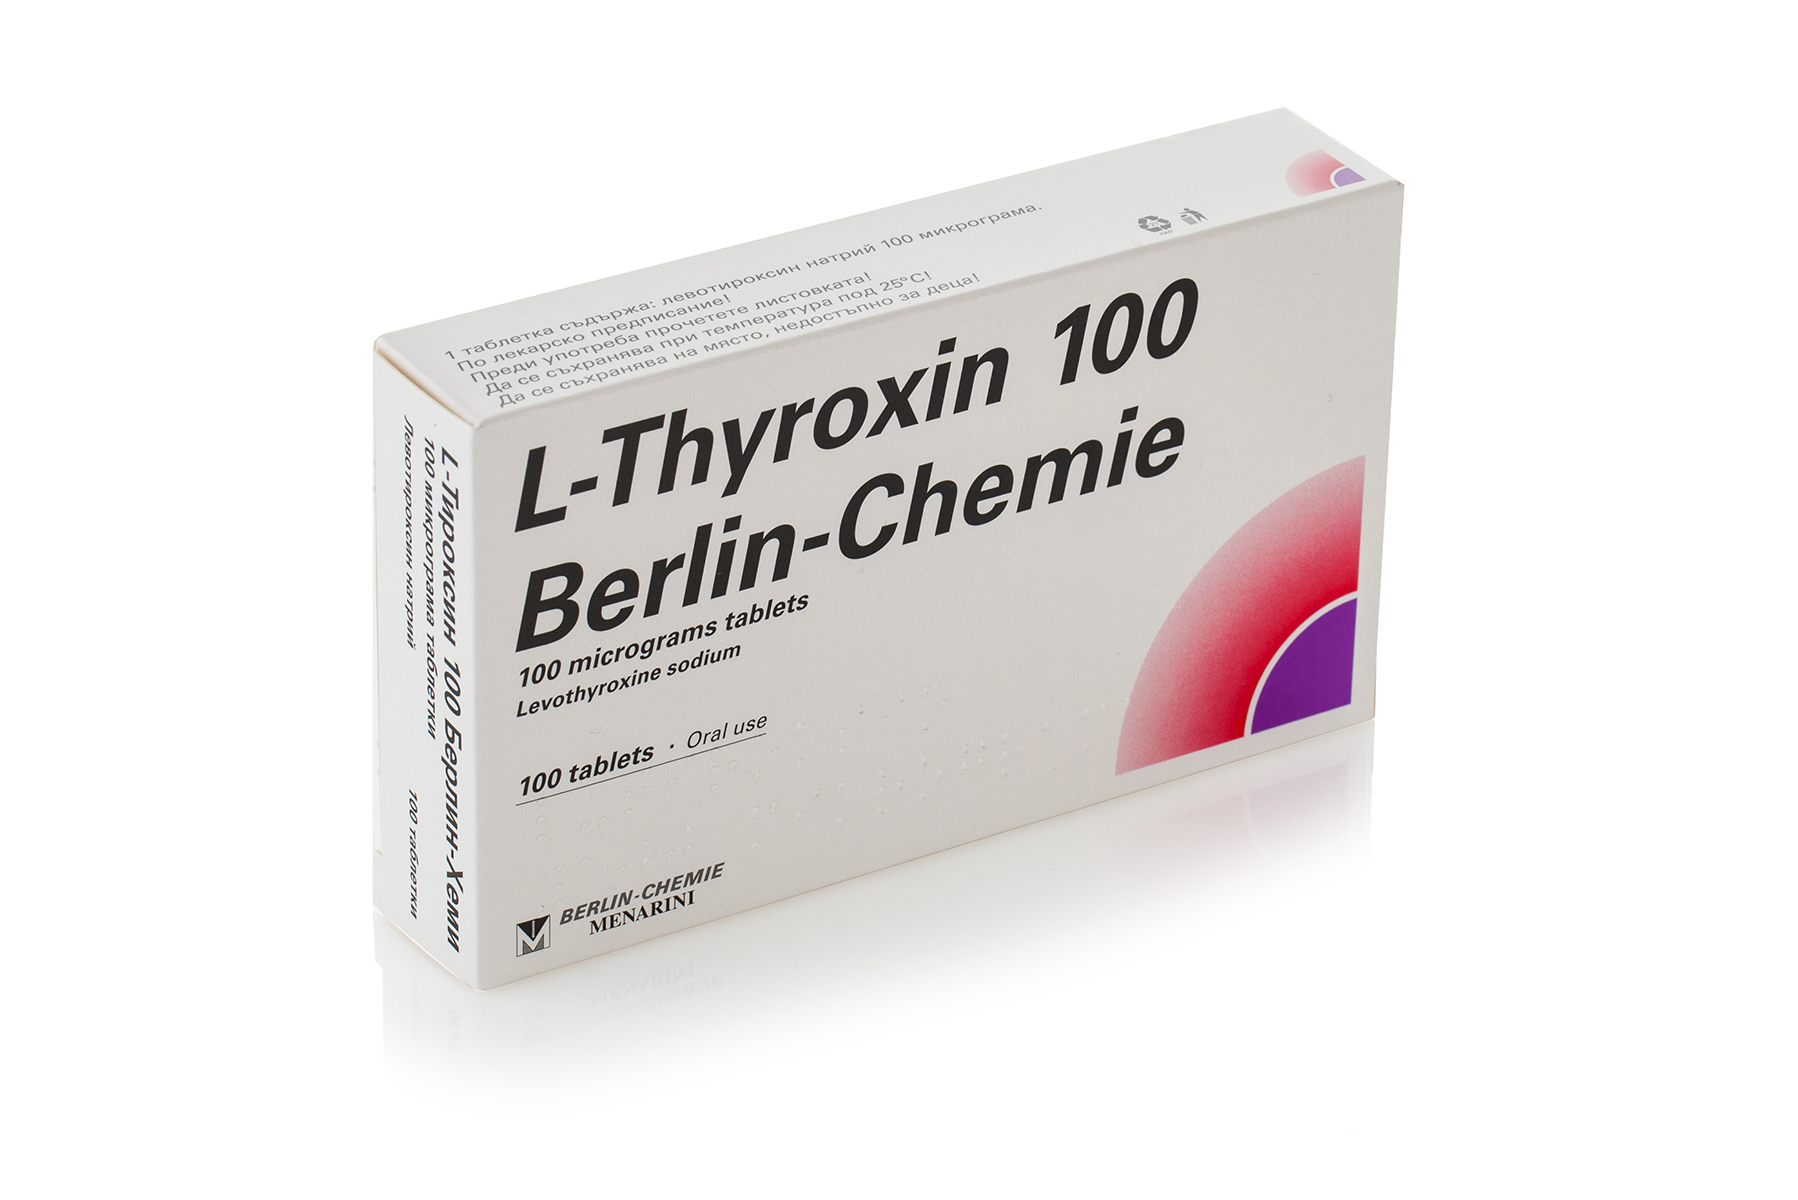 Taking thyroxine for weight loss